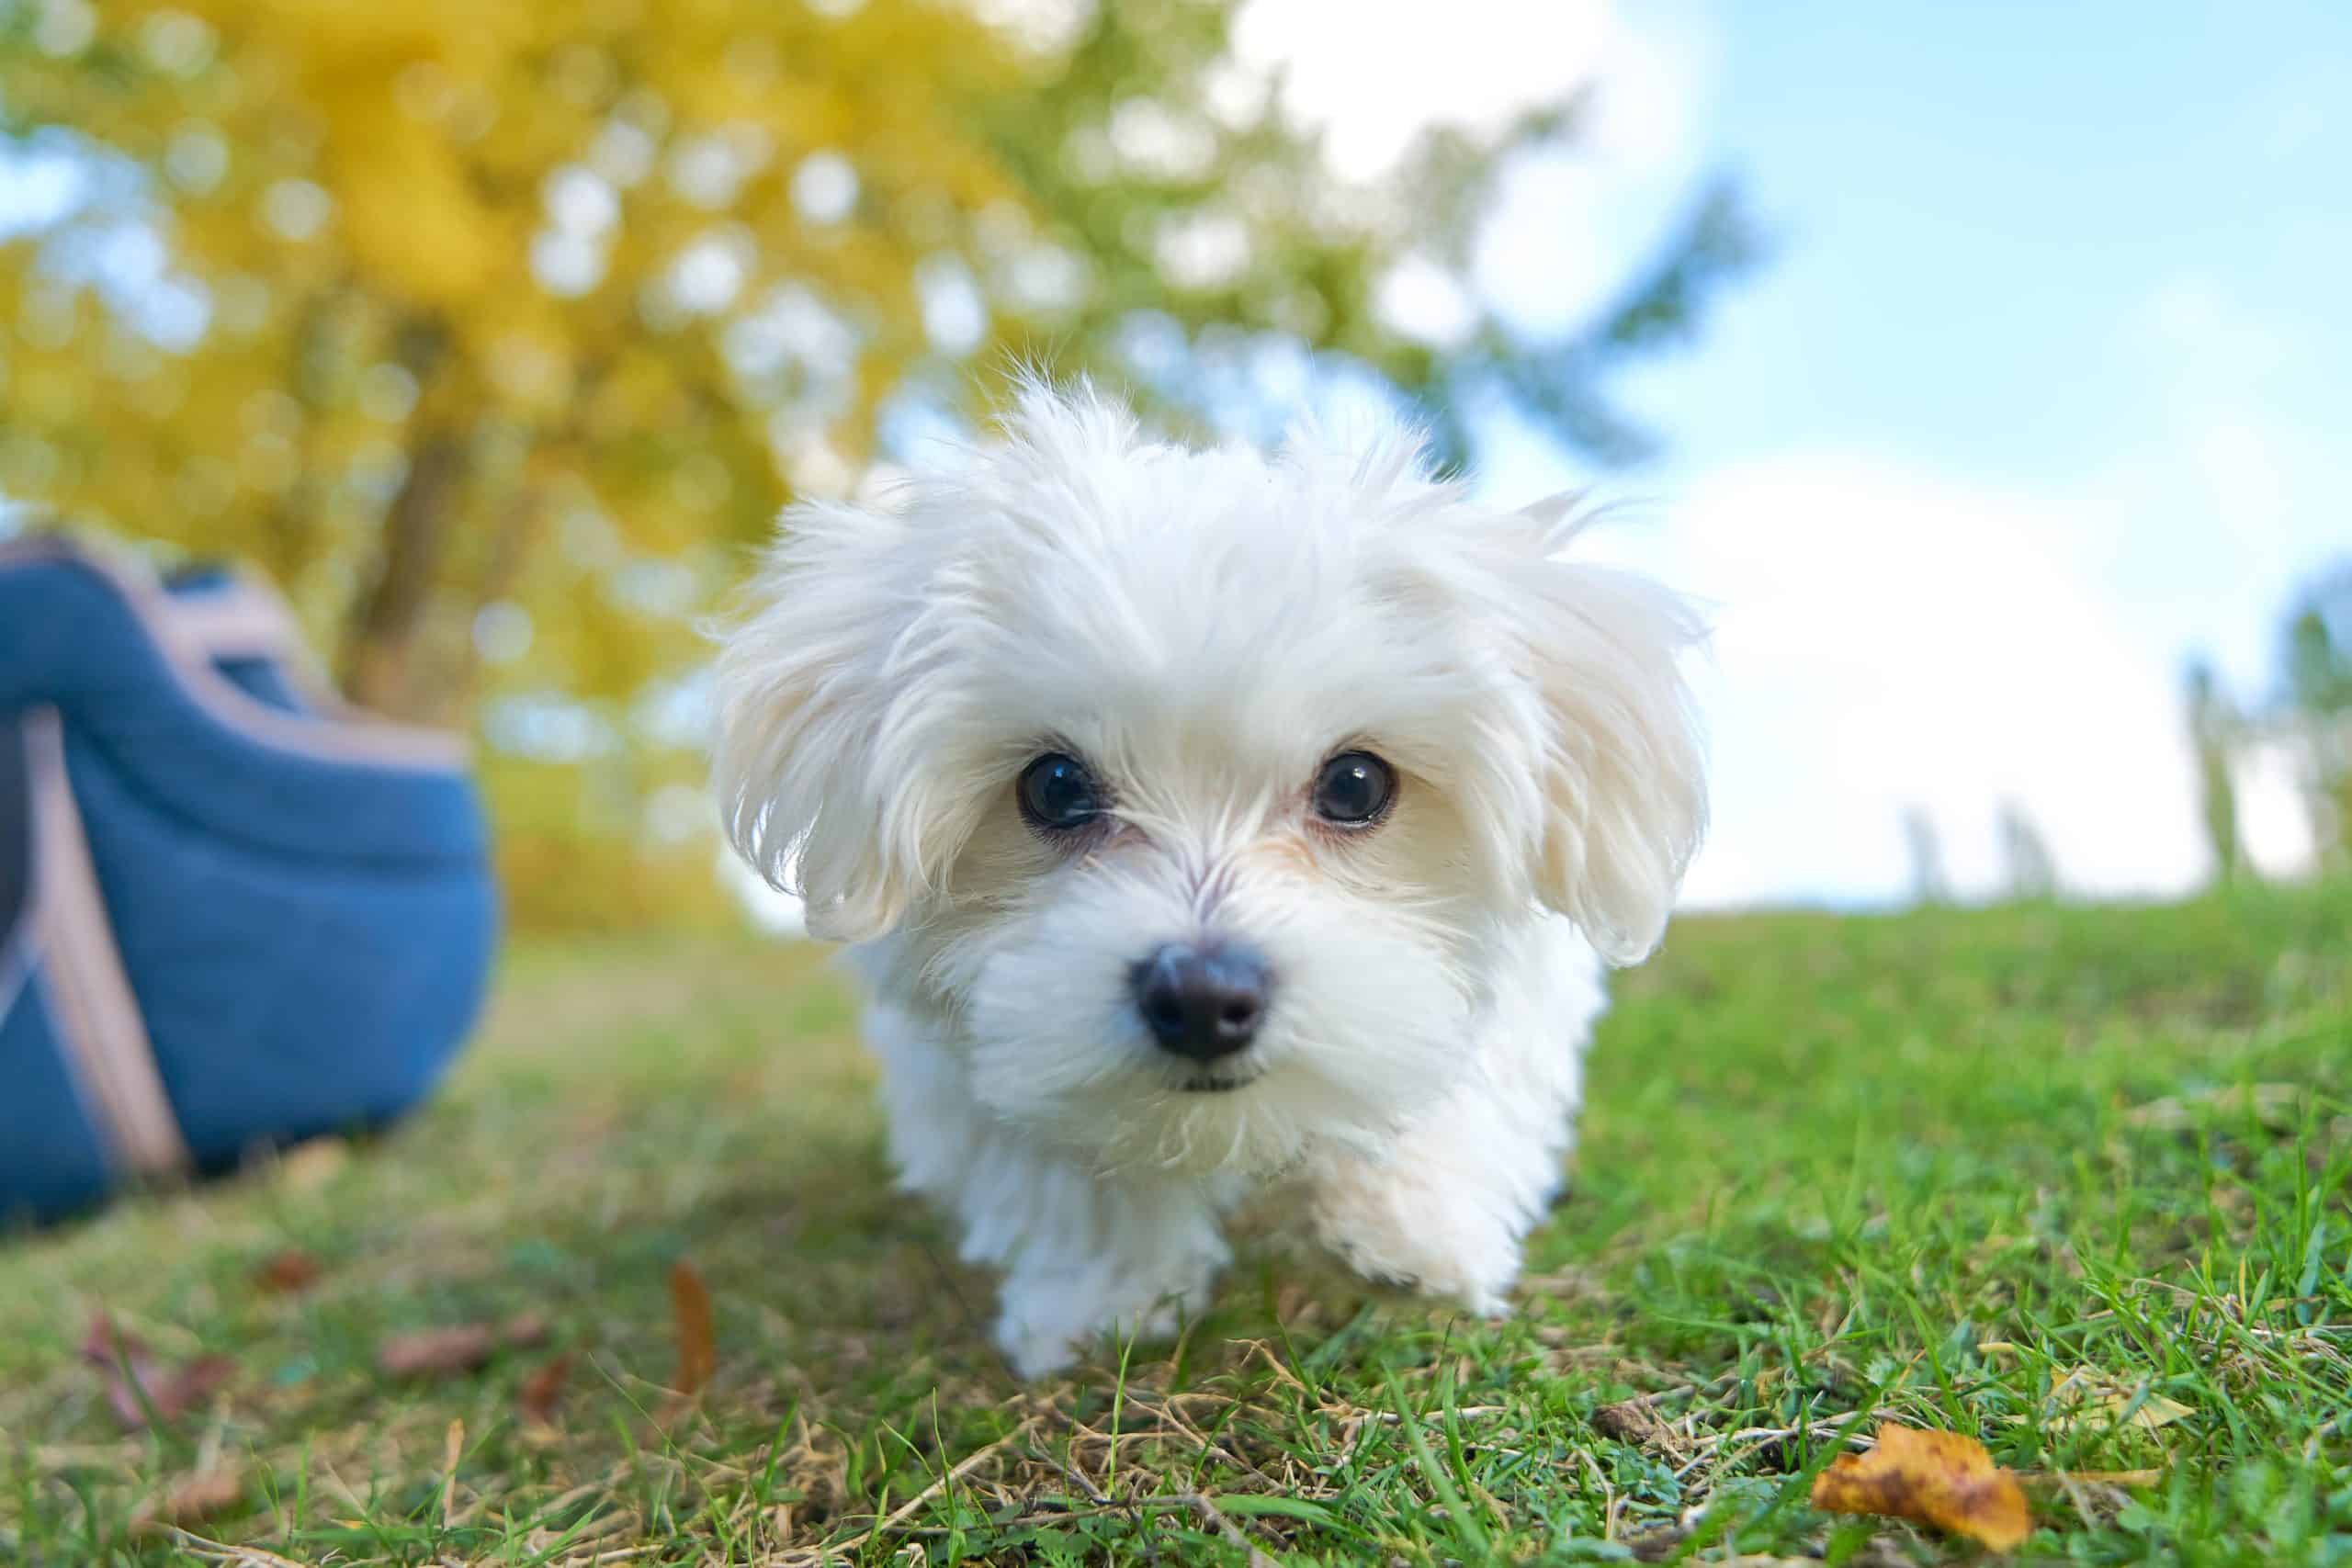 Maltese are among the dog breeds prone to dog tear stains.